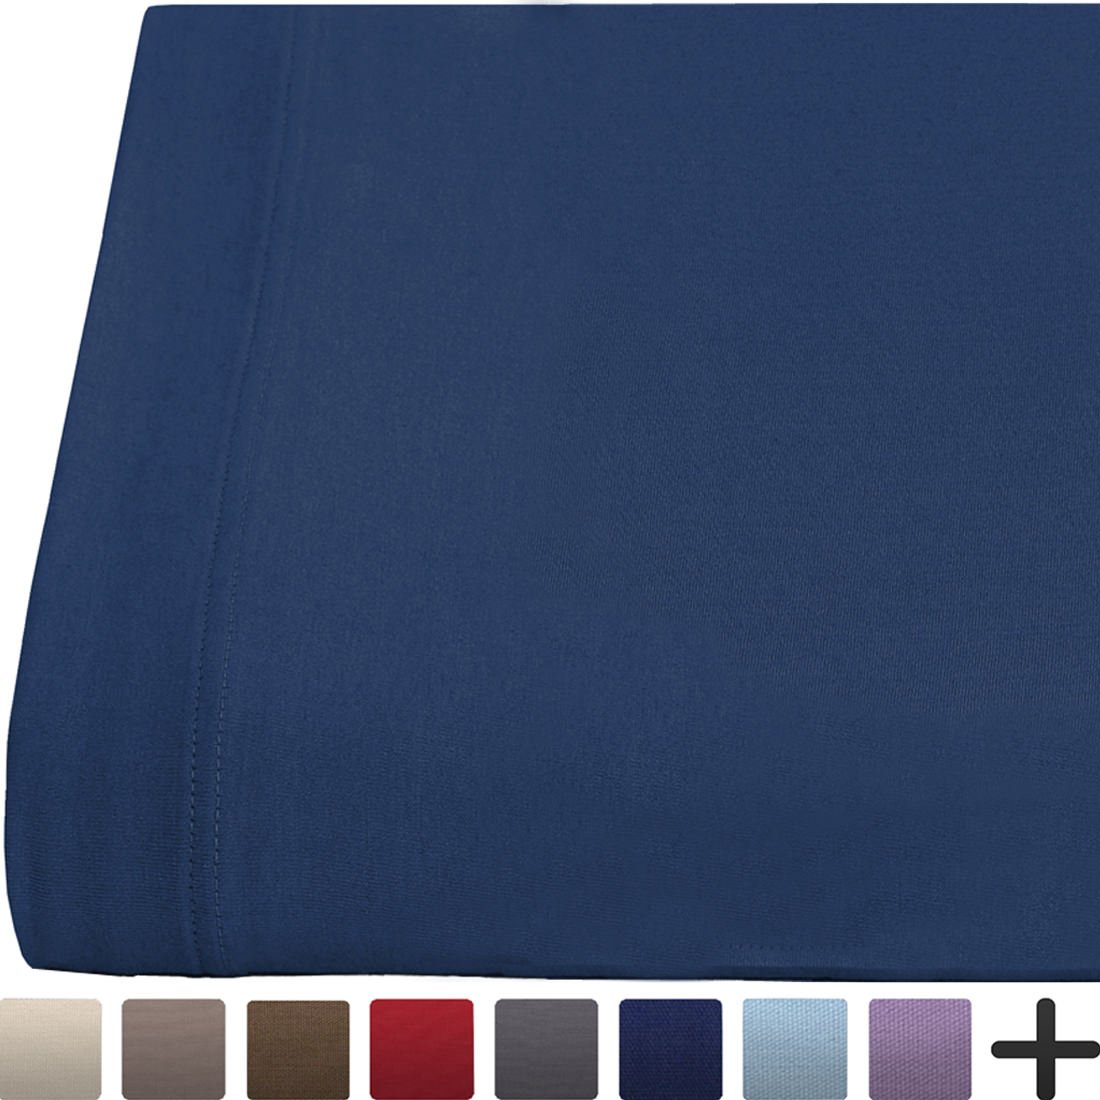 Flat Top Sheet Super Soft Jersey Knit Cotton - All Season Bed Sheets - Cozy - Breathable - Easy Care (Twin XL, Dark Blue)